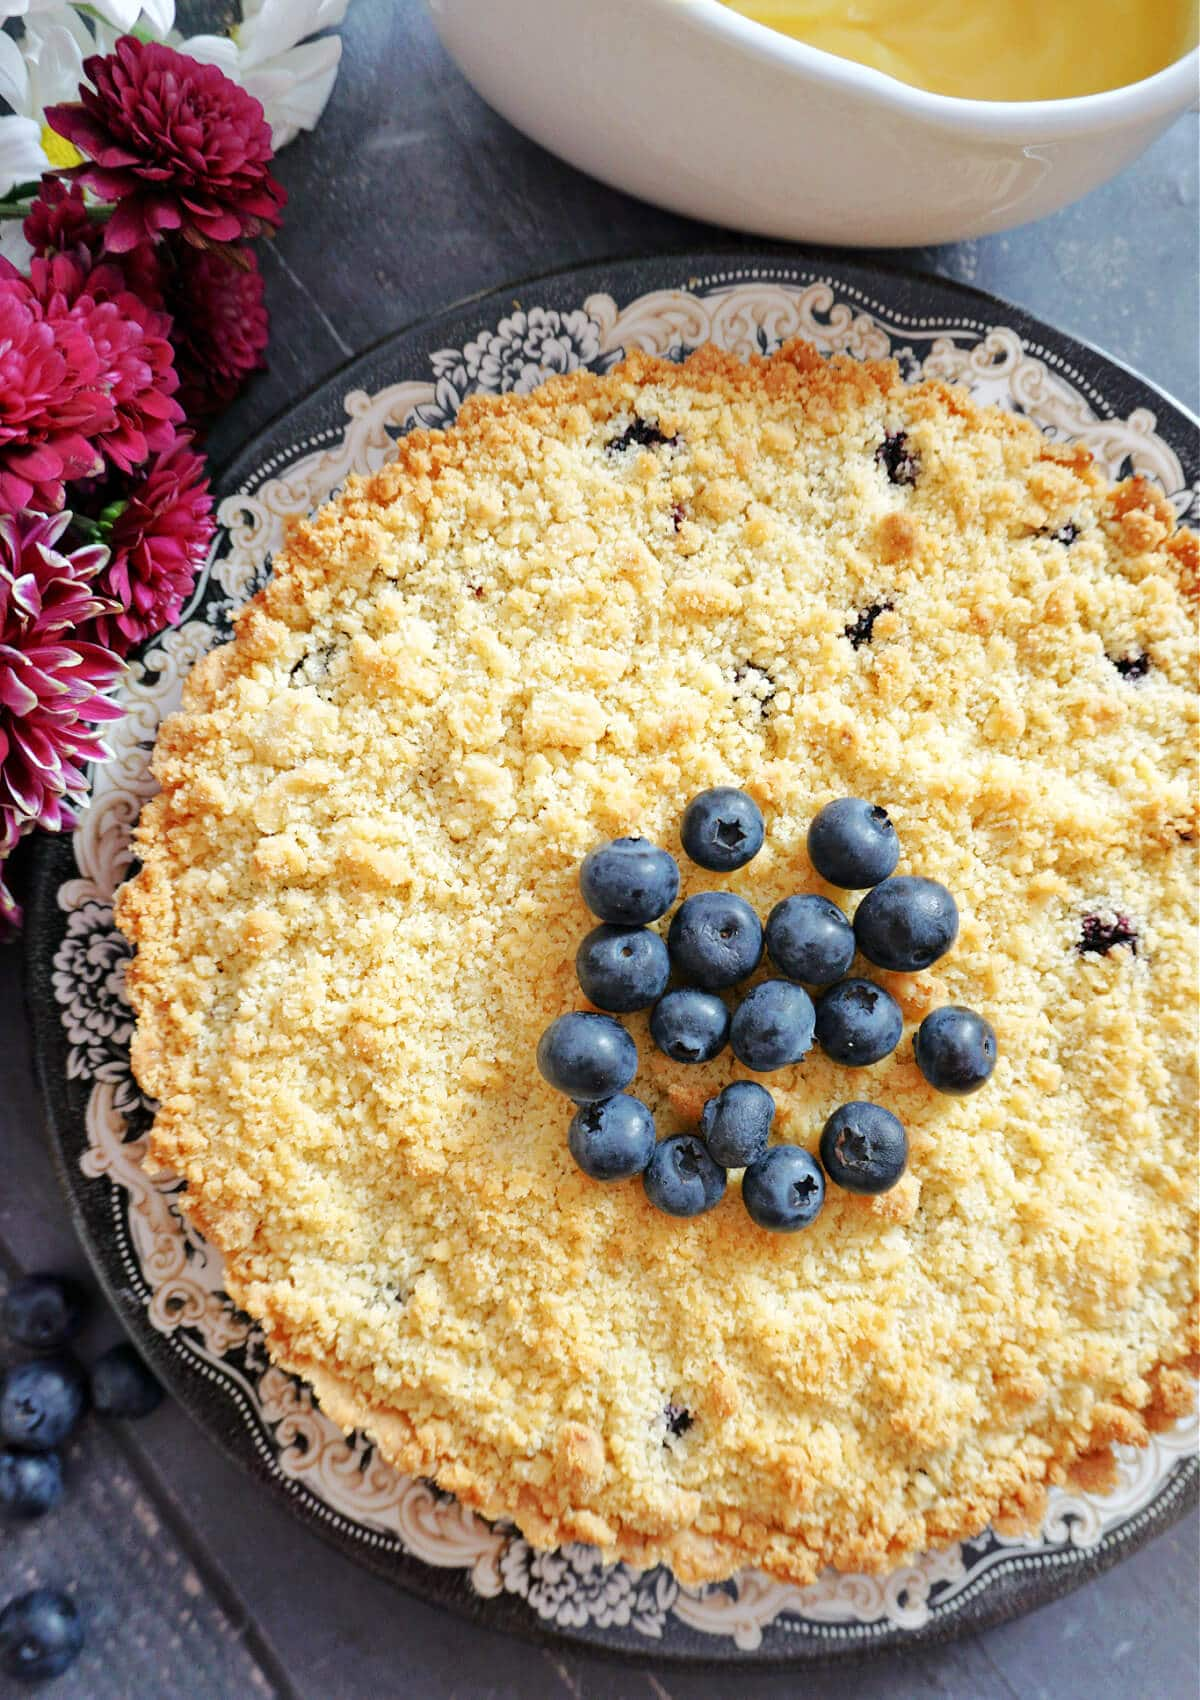 Overhead shot of a blueberry pie topped with blueberries